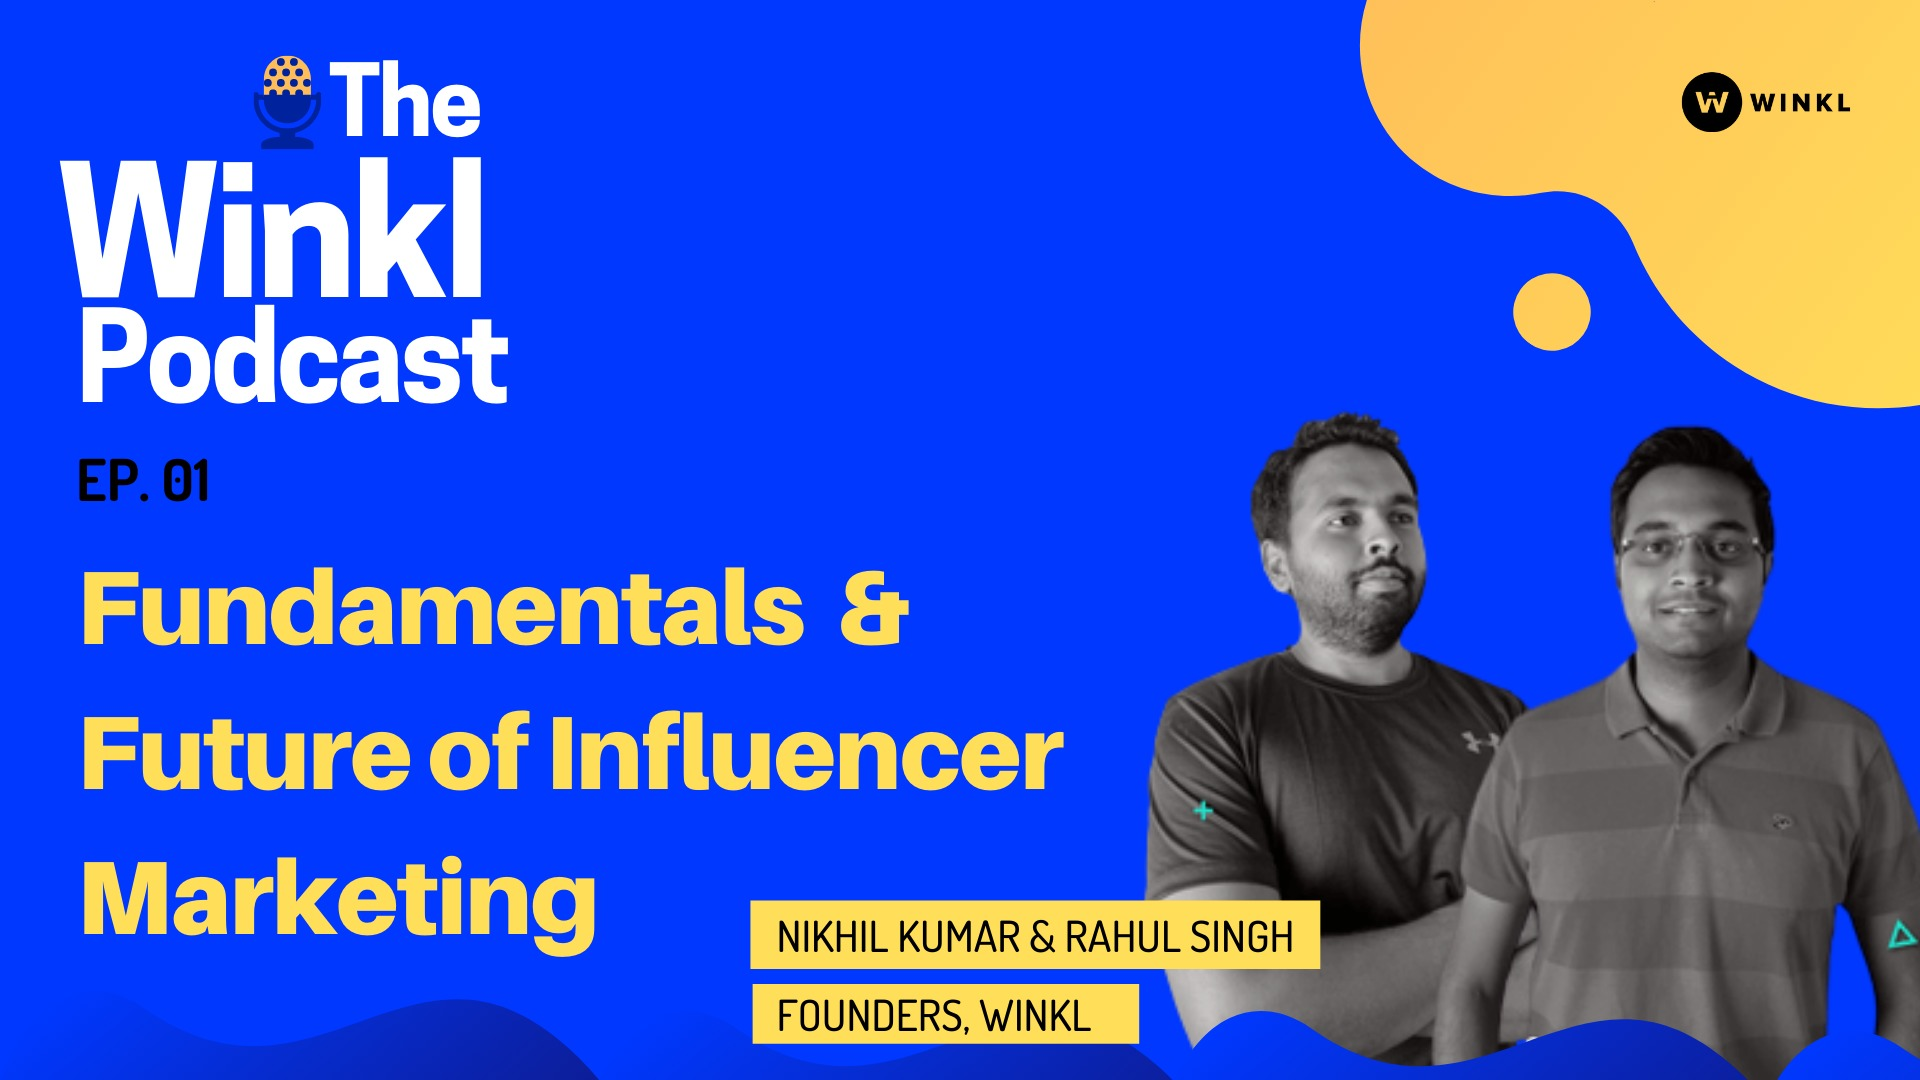 The Winkl Podcast - India's only influencer marketing podcast image